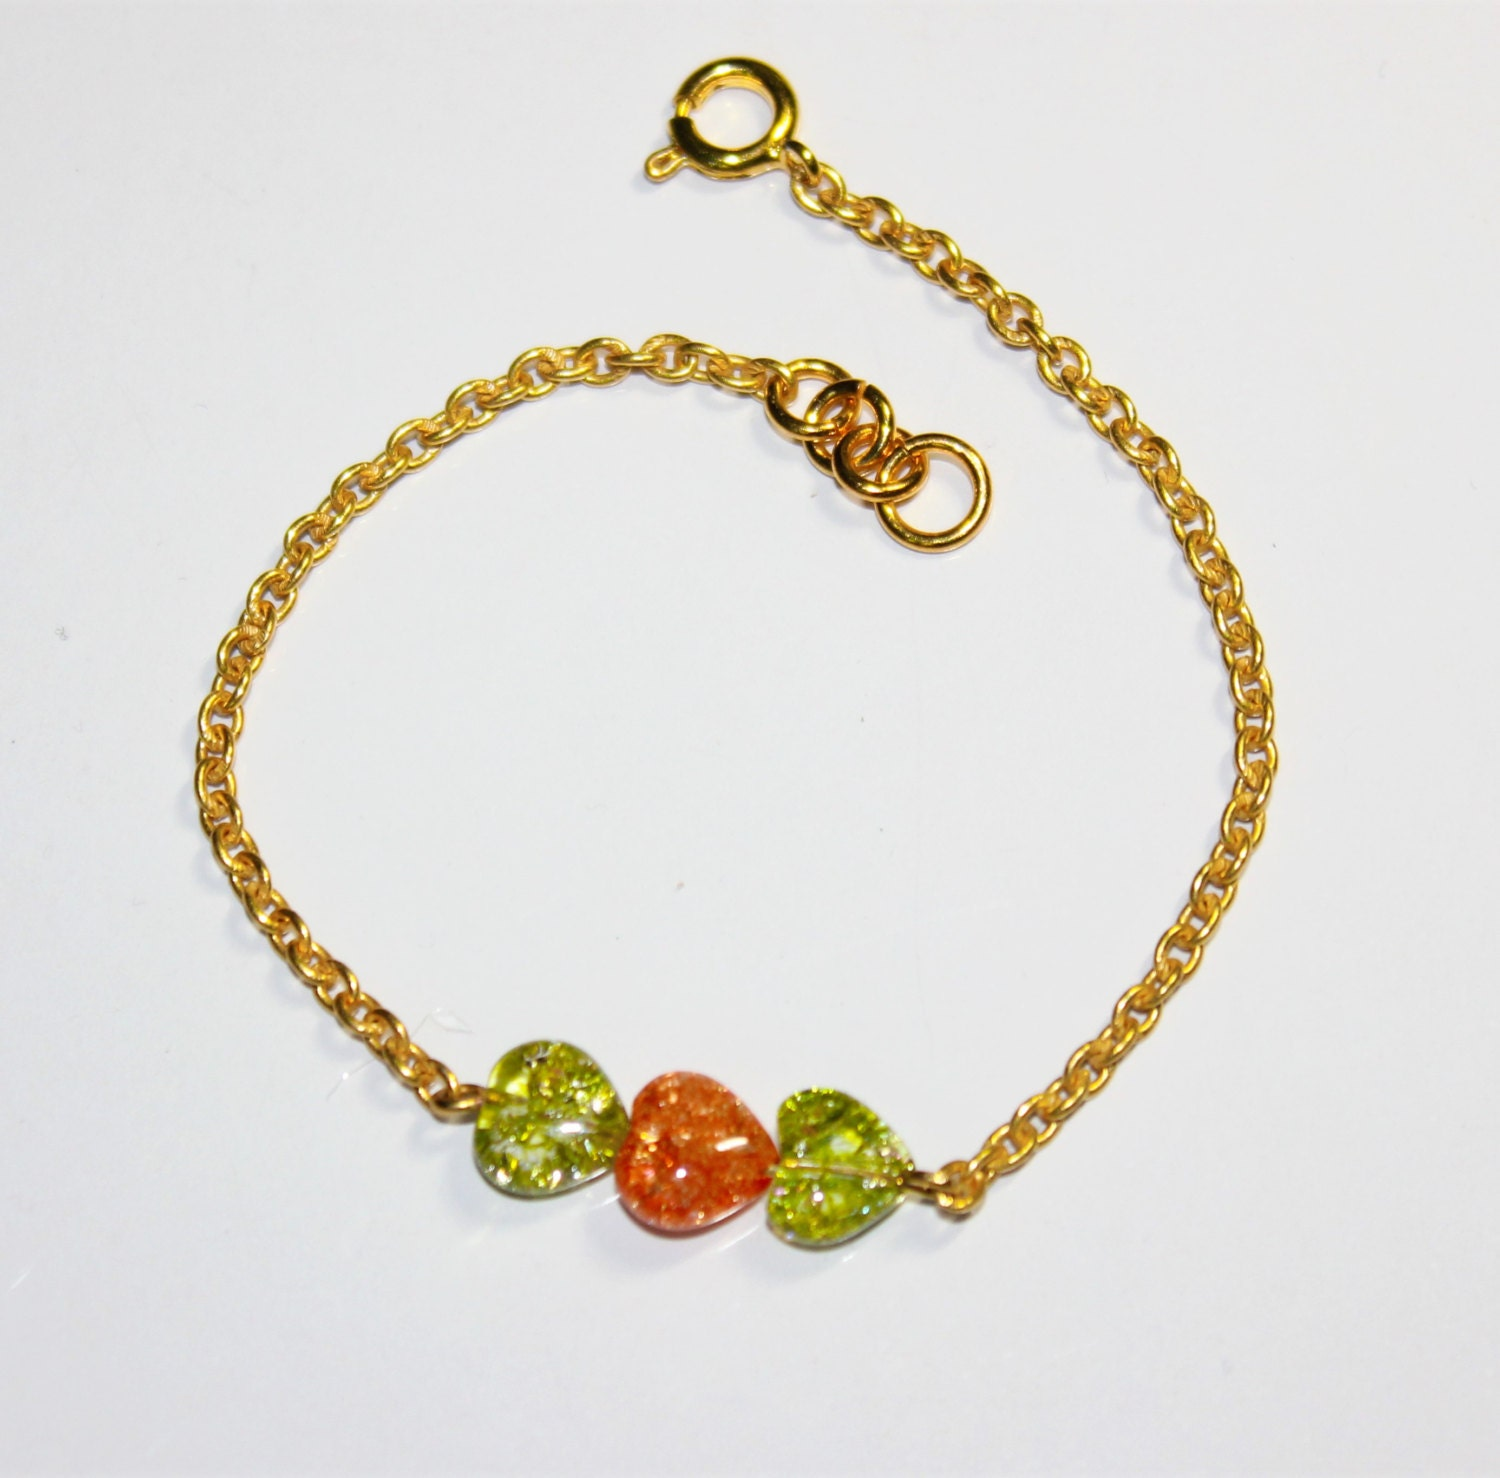 Peridot Green and Coral Heart shaped Crackled Quartz on Gold Chain Bracelet